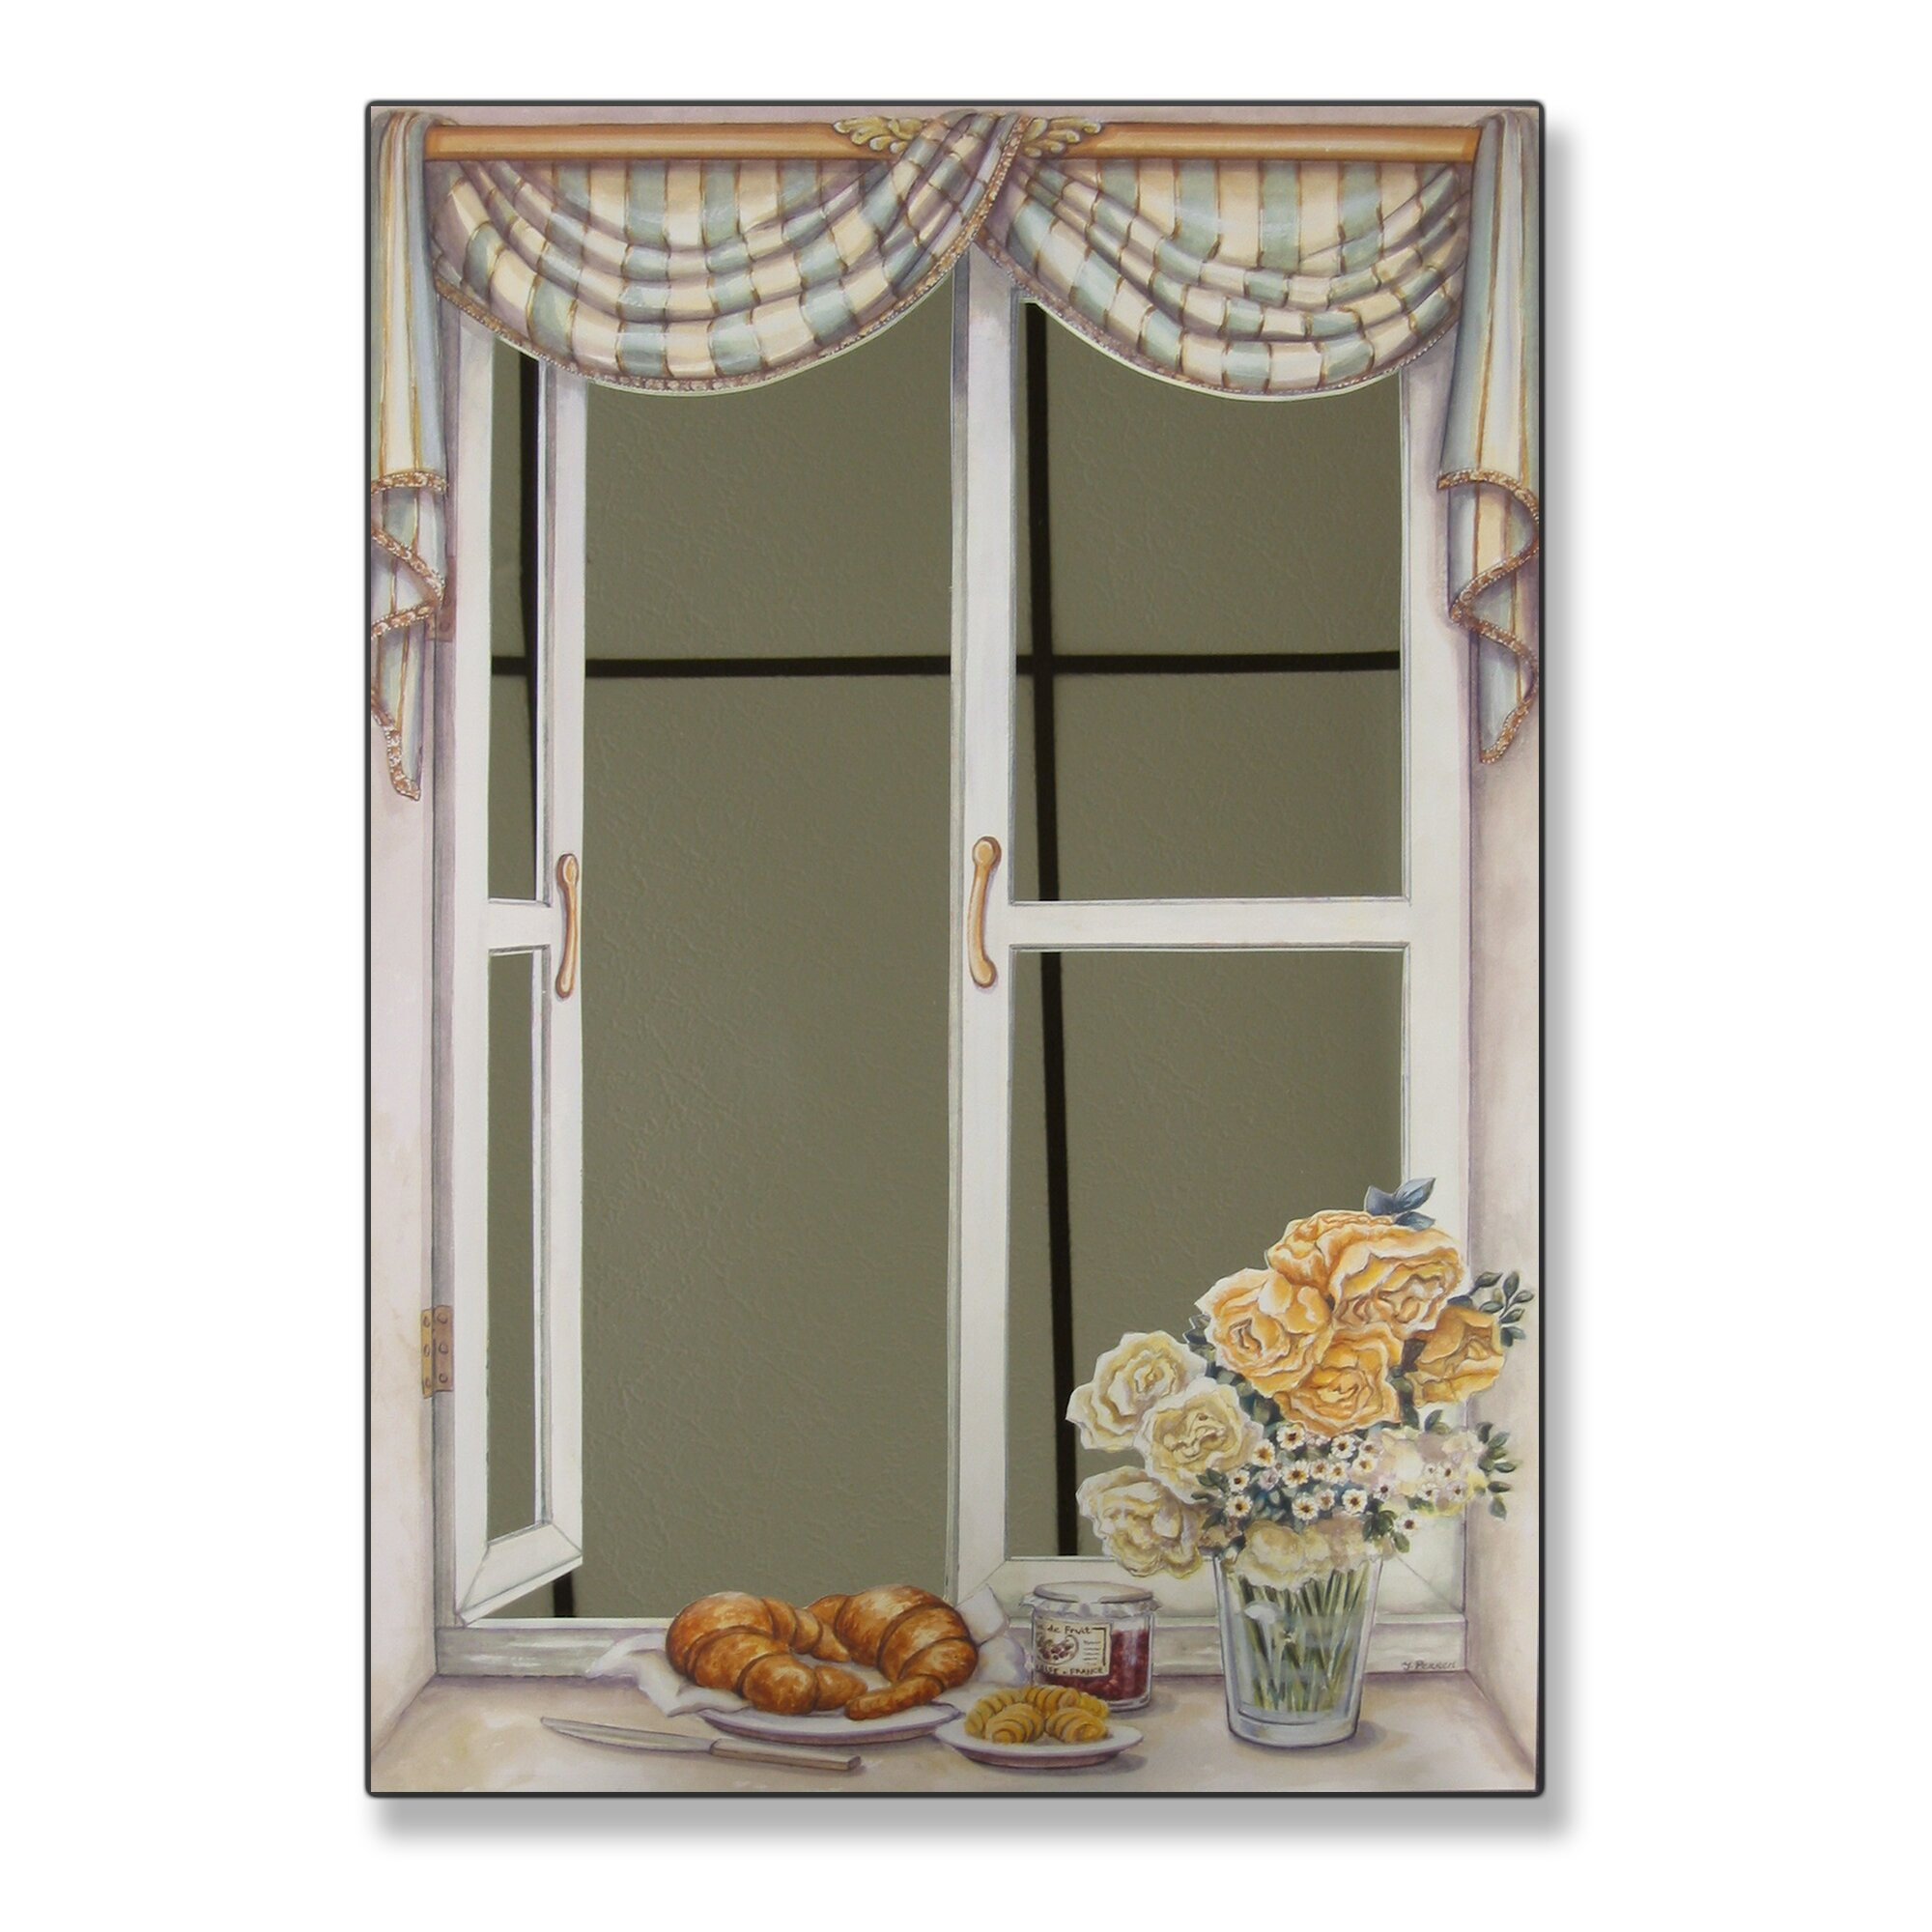 mirrors for bathrooms stupell industries croissant and roses faux window mirror 13704